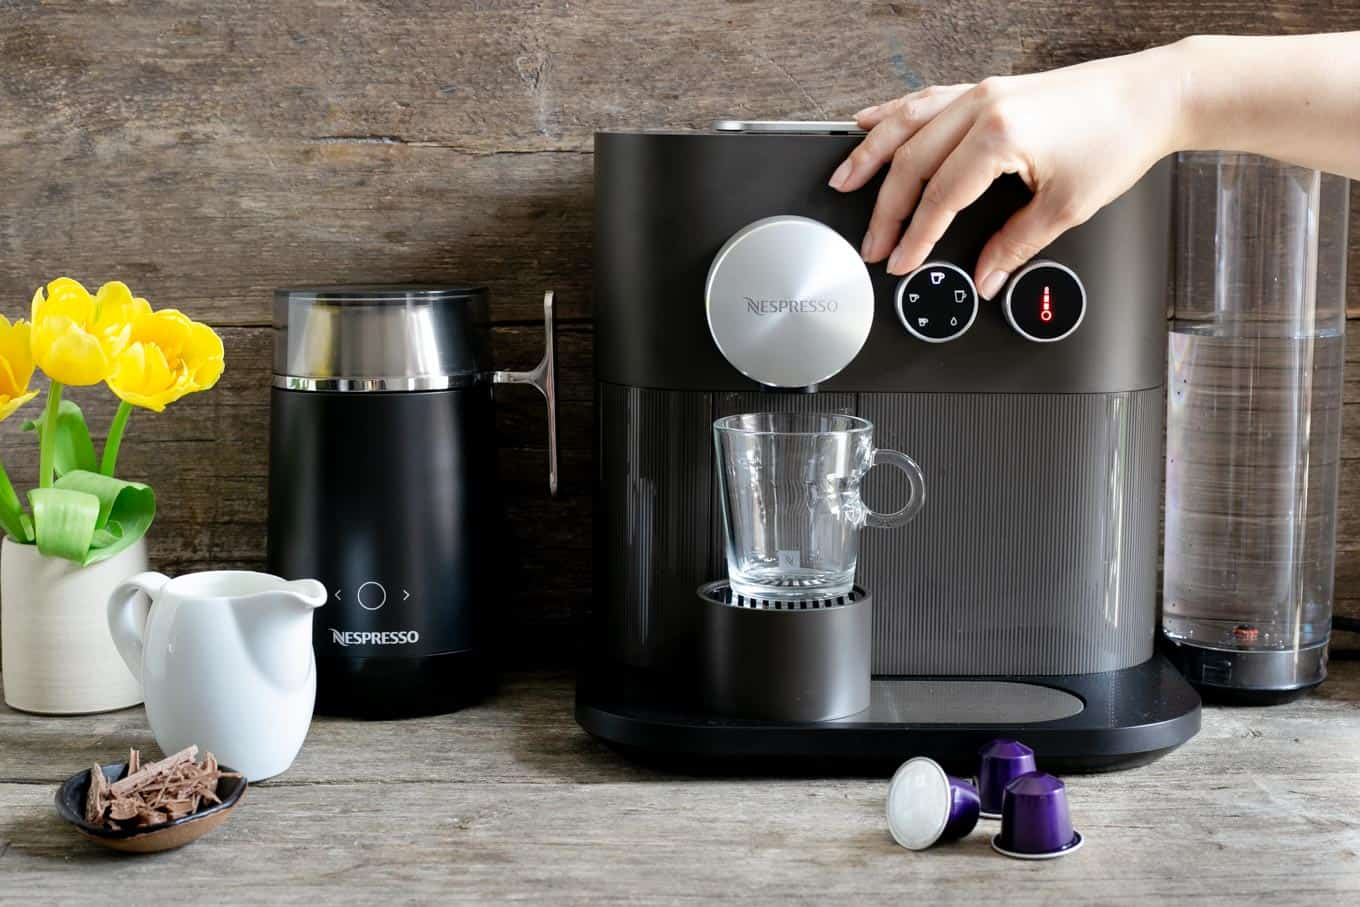 Nespresso Expert coffee machine #coffeelover #coffeerecipes | via @annabanana.co